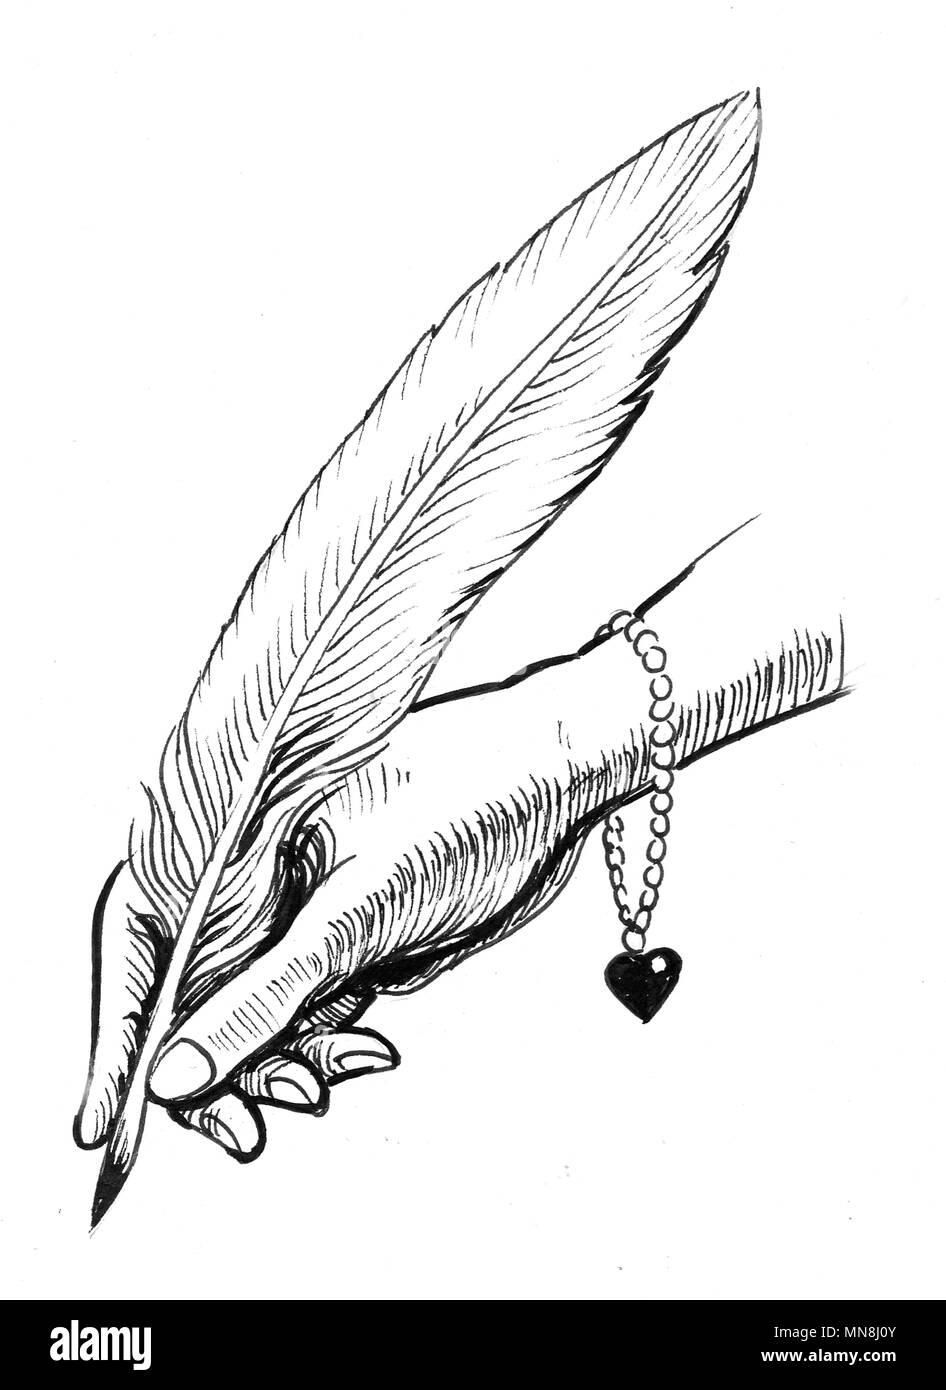 Hand Holding Quill Pen High Resolution Stock Photography And Images Alamy Hand svg, hand clipart, hand files for cricut, hand cut files, hand contour, hand dxf, hand png, fingers svg, hand vector, hand silhouette. https www alamy com female hand writing with quill pen image185201211 html